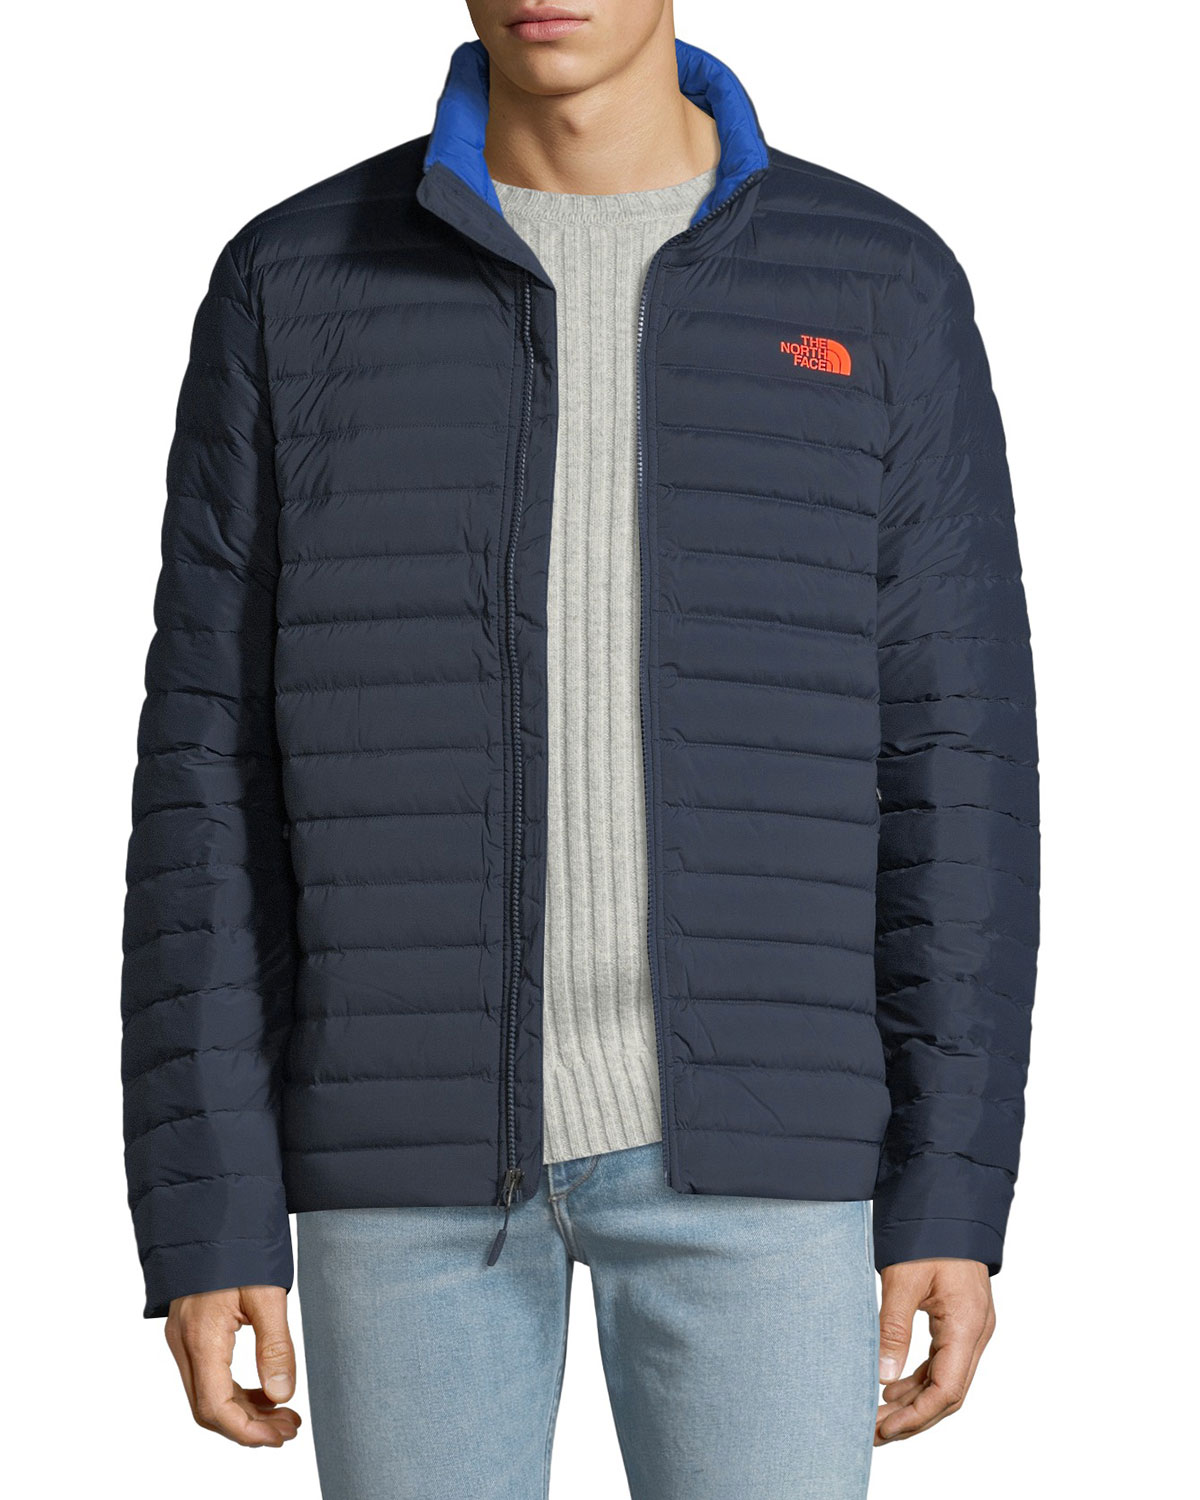 The North Face Men s Stretch Quilted-Down Water-Repellant Jacket ... 8aeed9b79